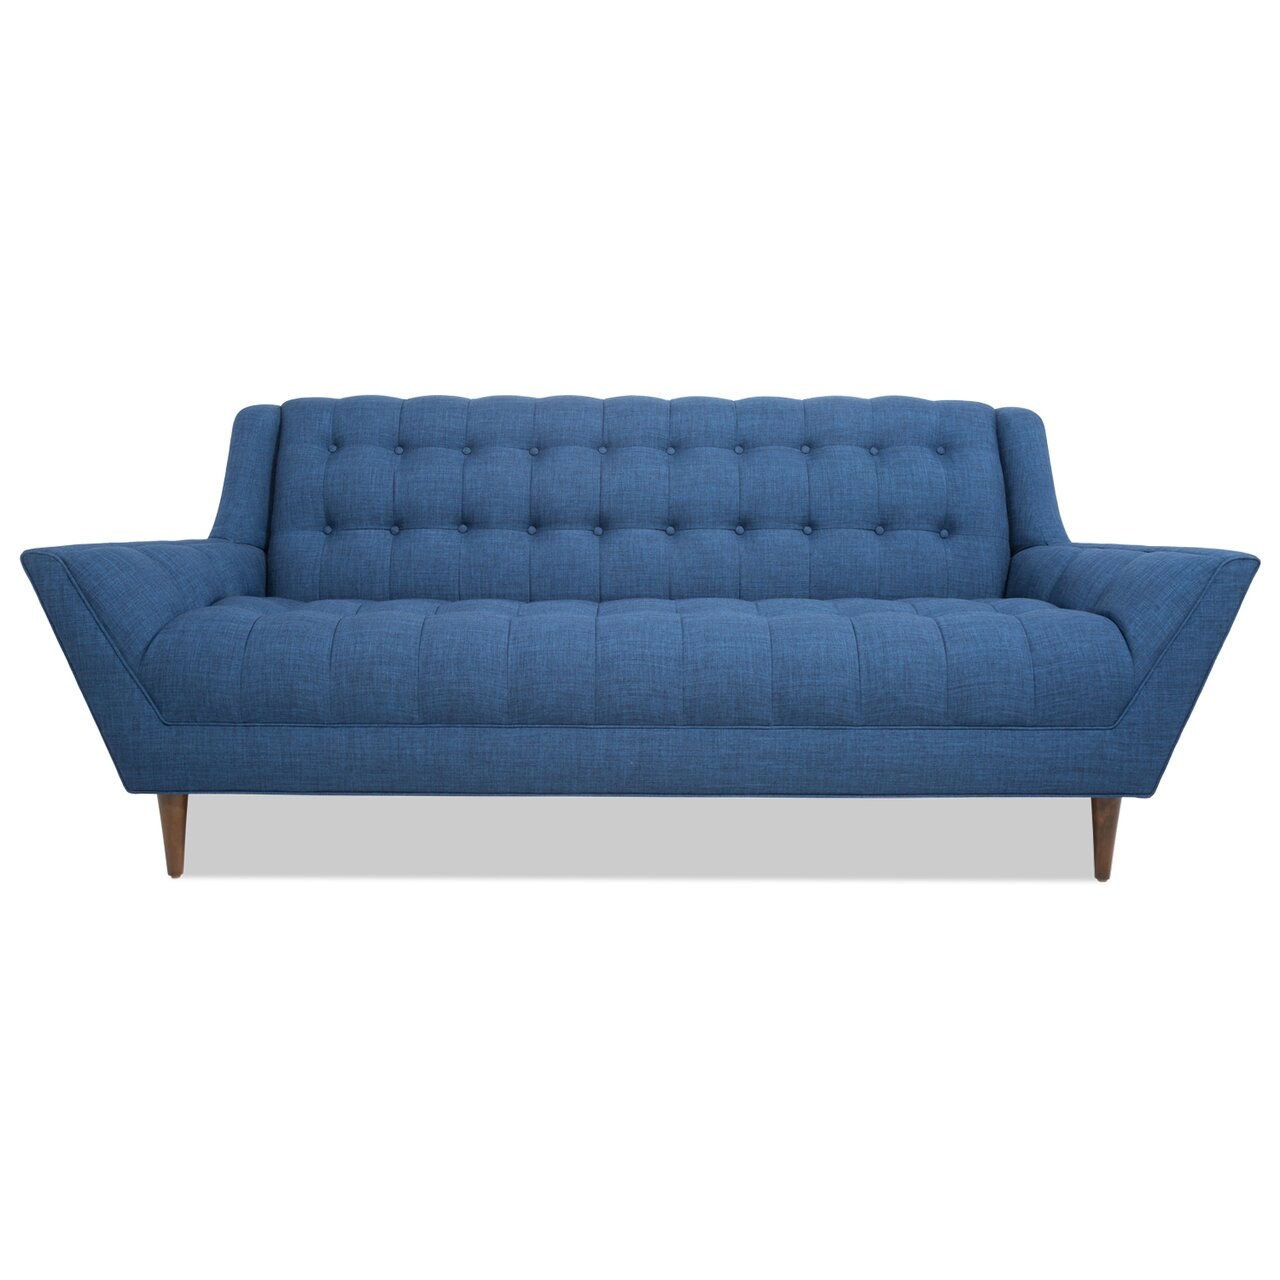 Danish modern sleeper sofa danish sleeper sofa amsterdam Sleeper sectional